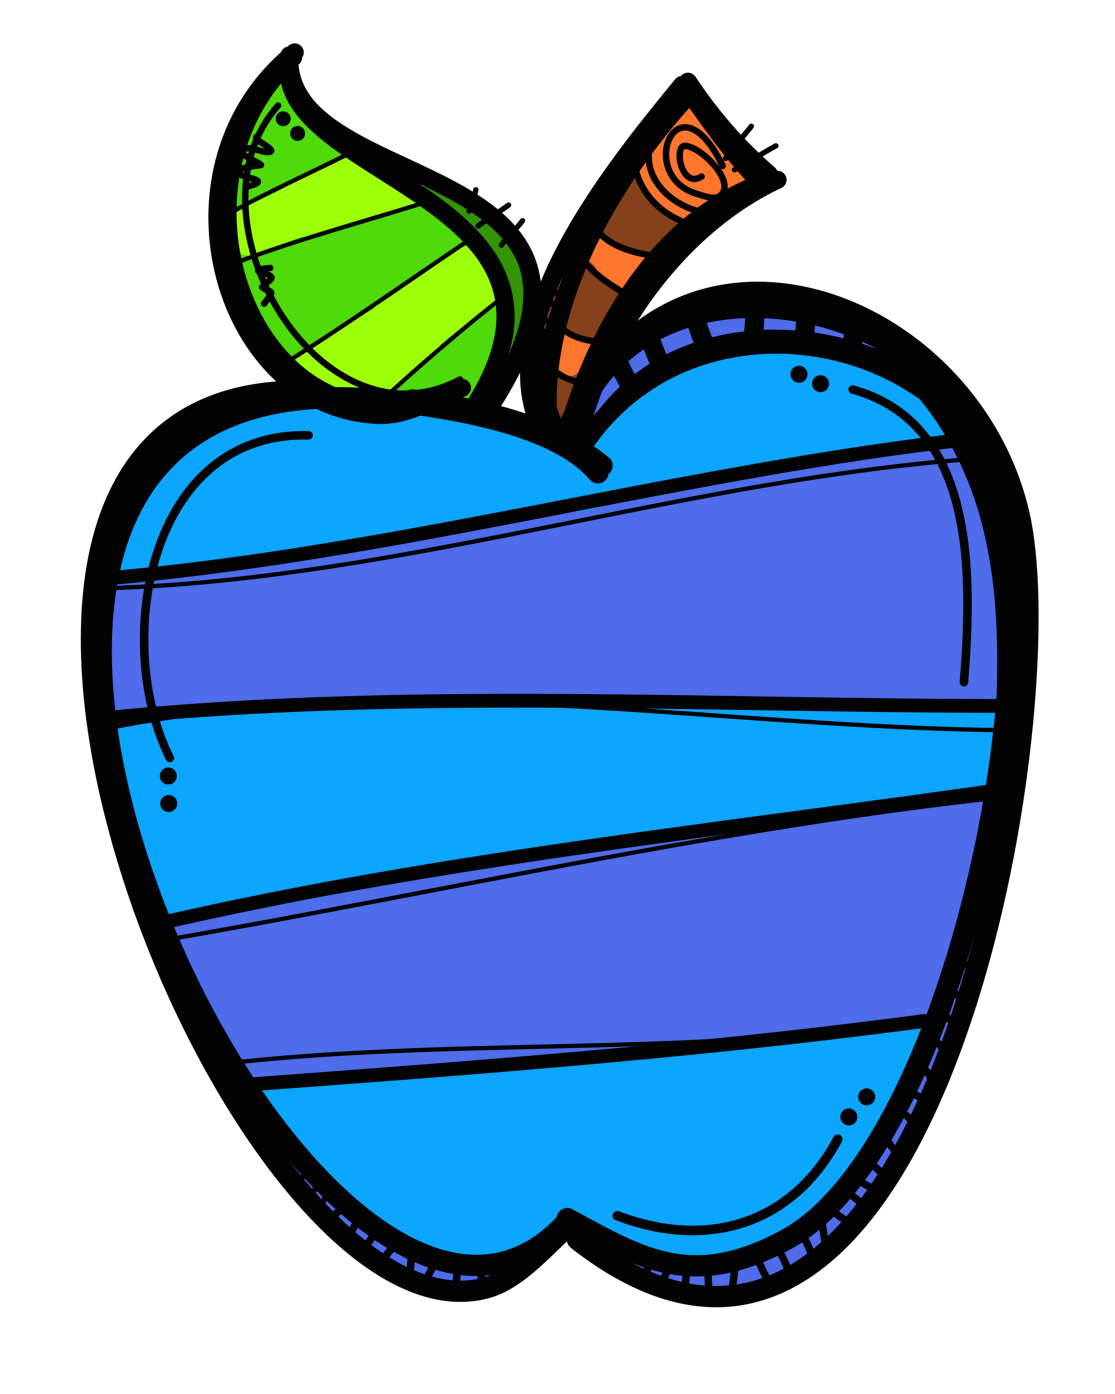 Blue apple clipart image 28+ Collection of Blue Apple Clipart | High quality, free cliparts ... image